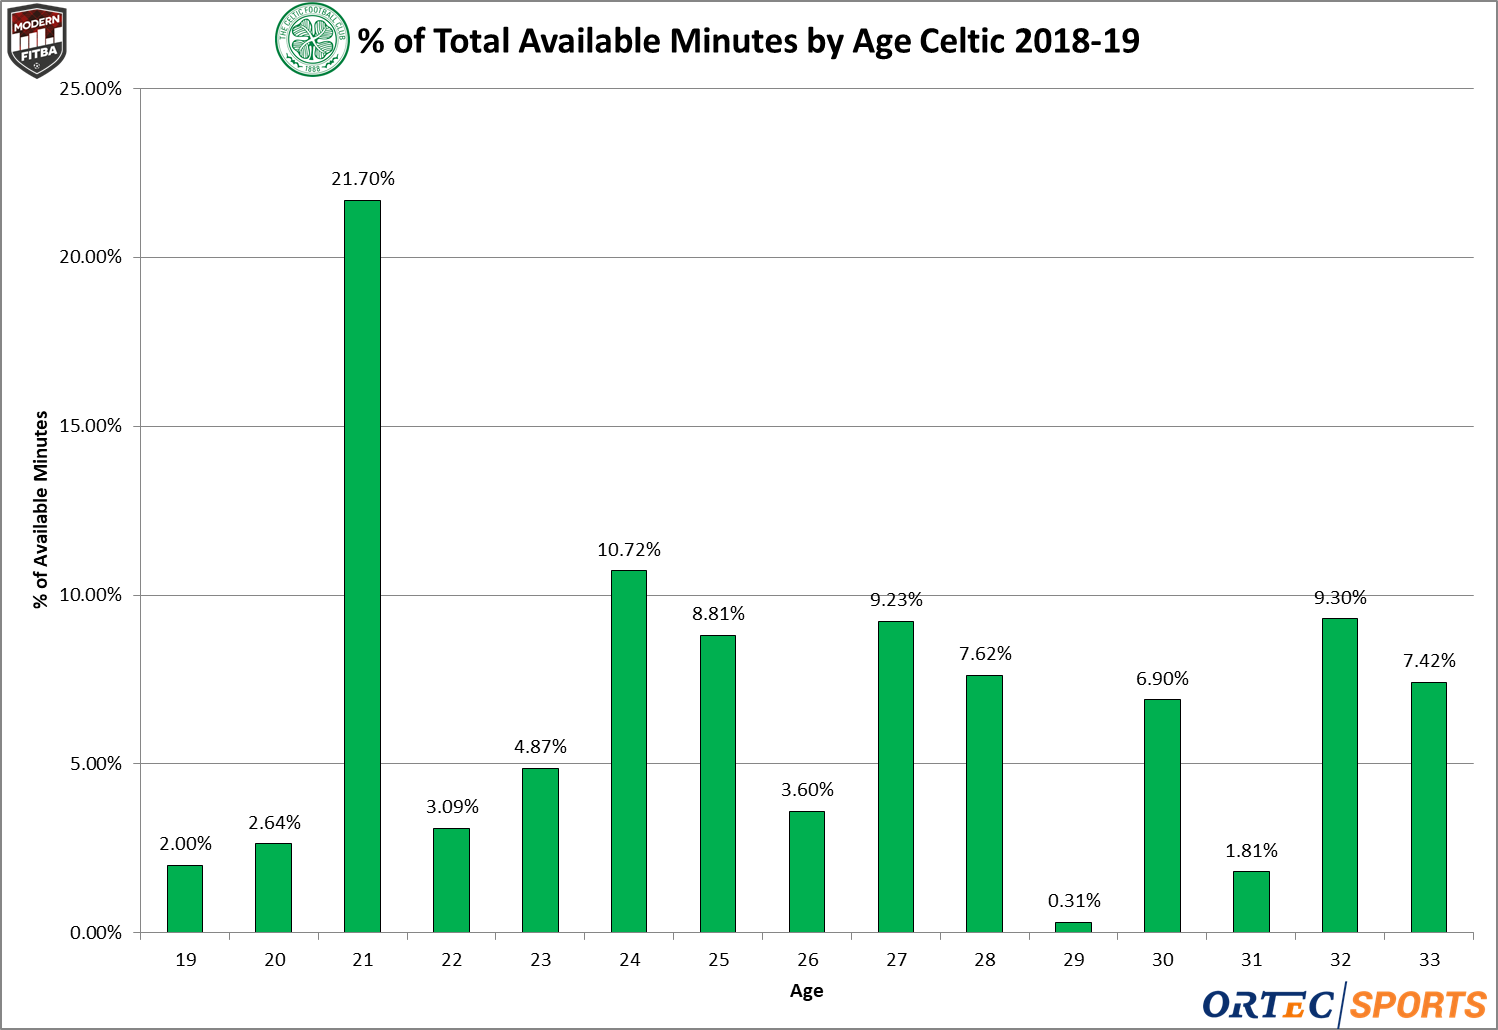 The percentage of total minutes played by age for Celtic in league play 2018-19.